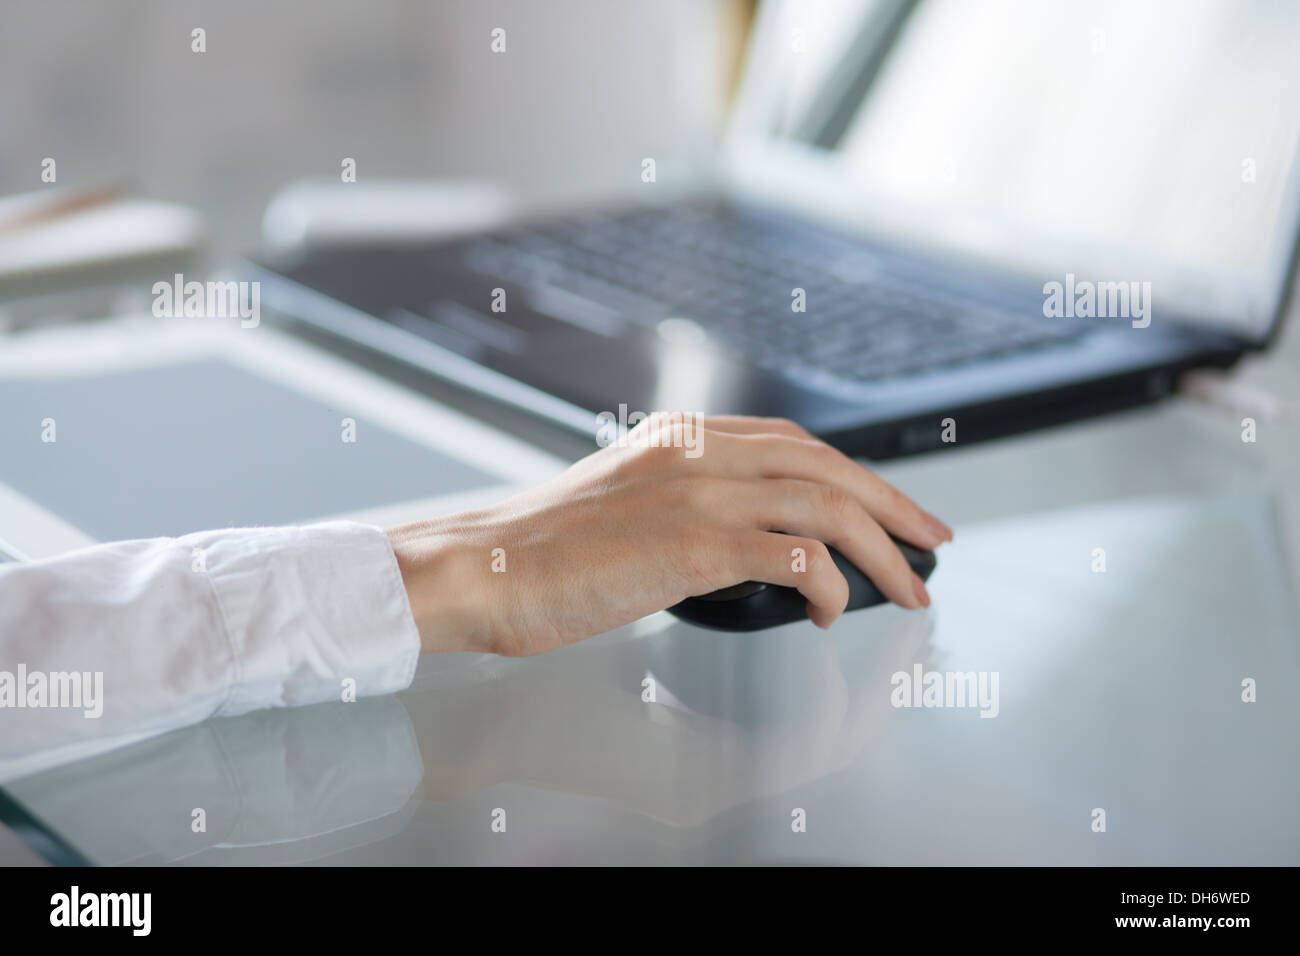 Woman's hand using cordless mouse on glass table - Stock Image